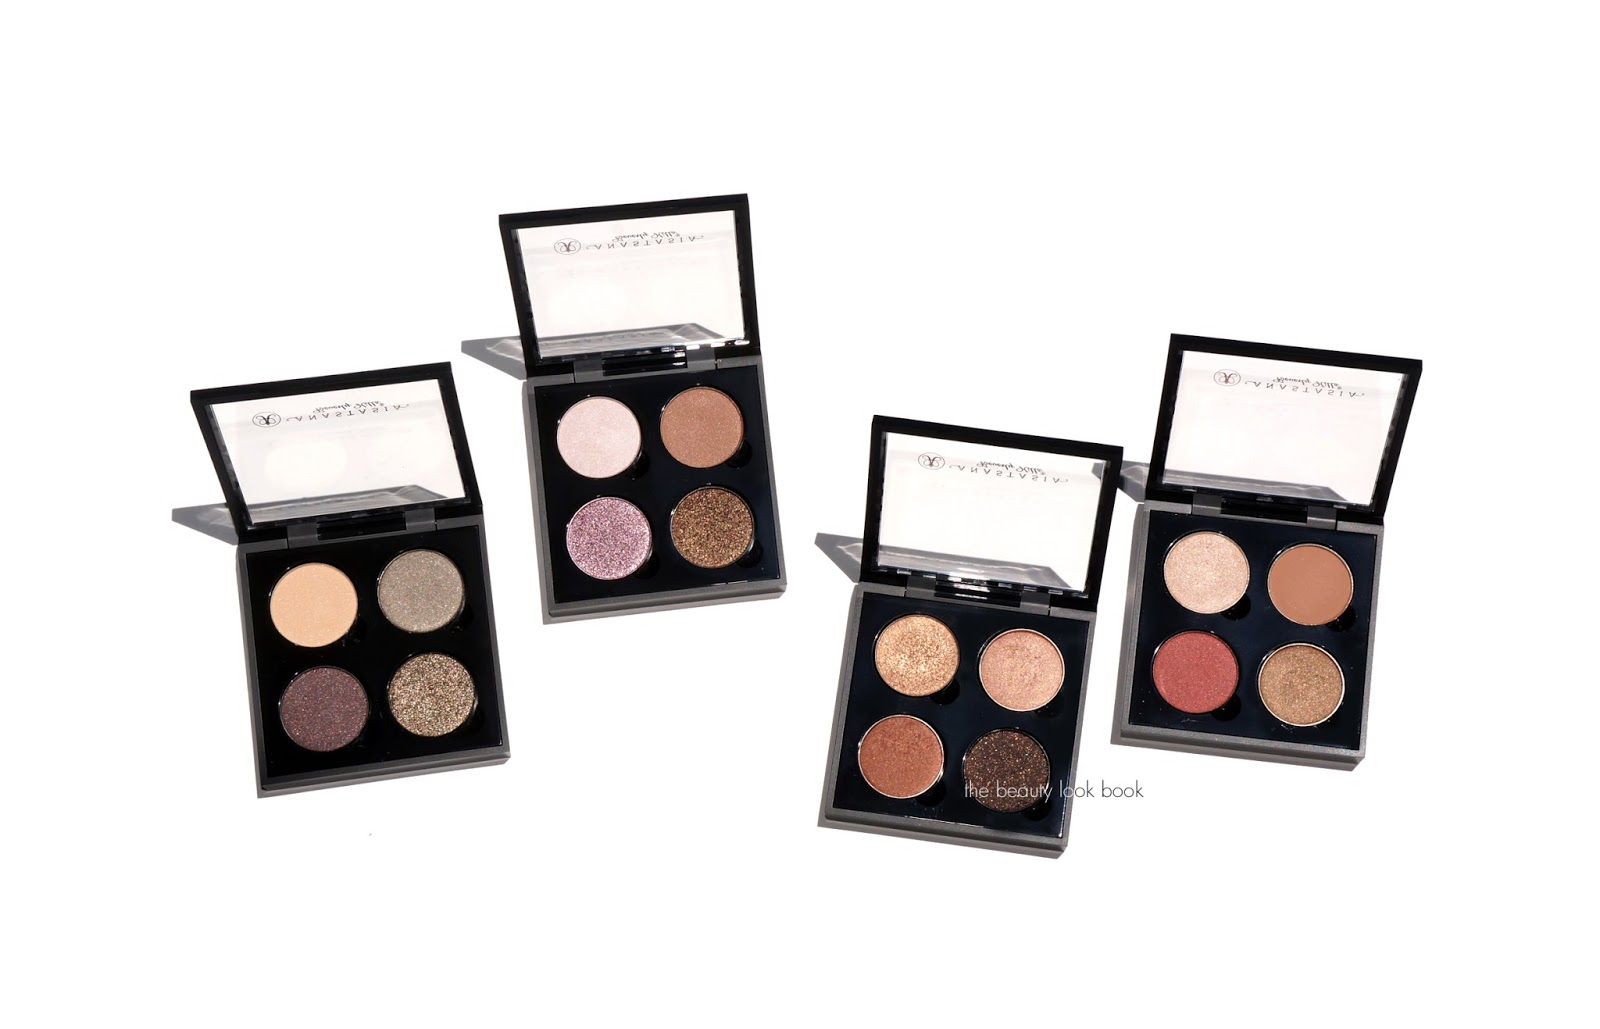 anastasia beverly hills eyeshadow singles more shades reviewed swatched the beauty look book. Black Bedroom Furniture Sets. Home Design Ideas